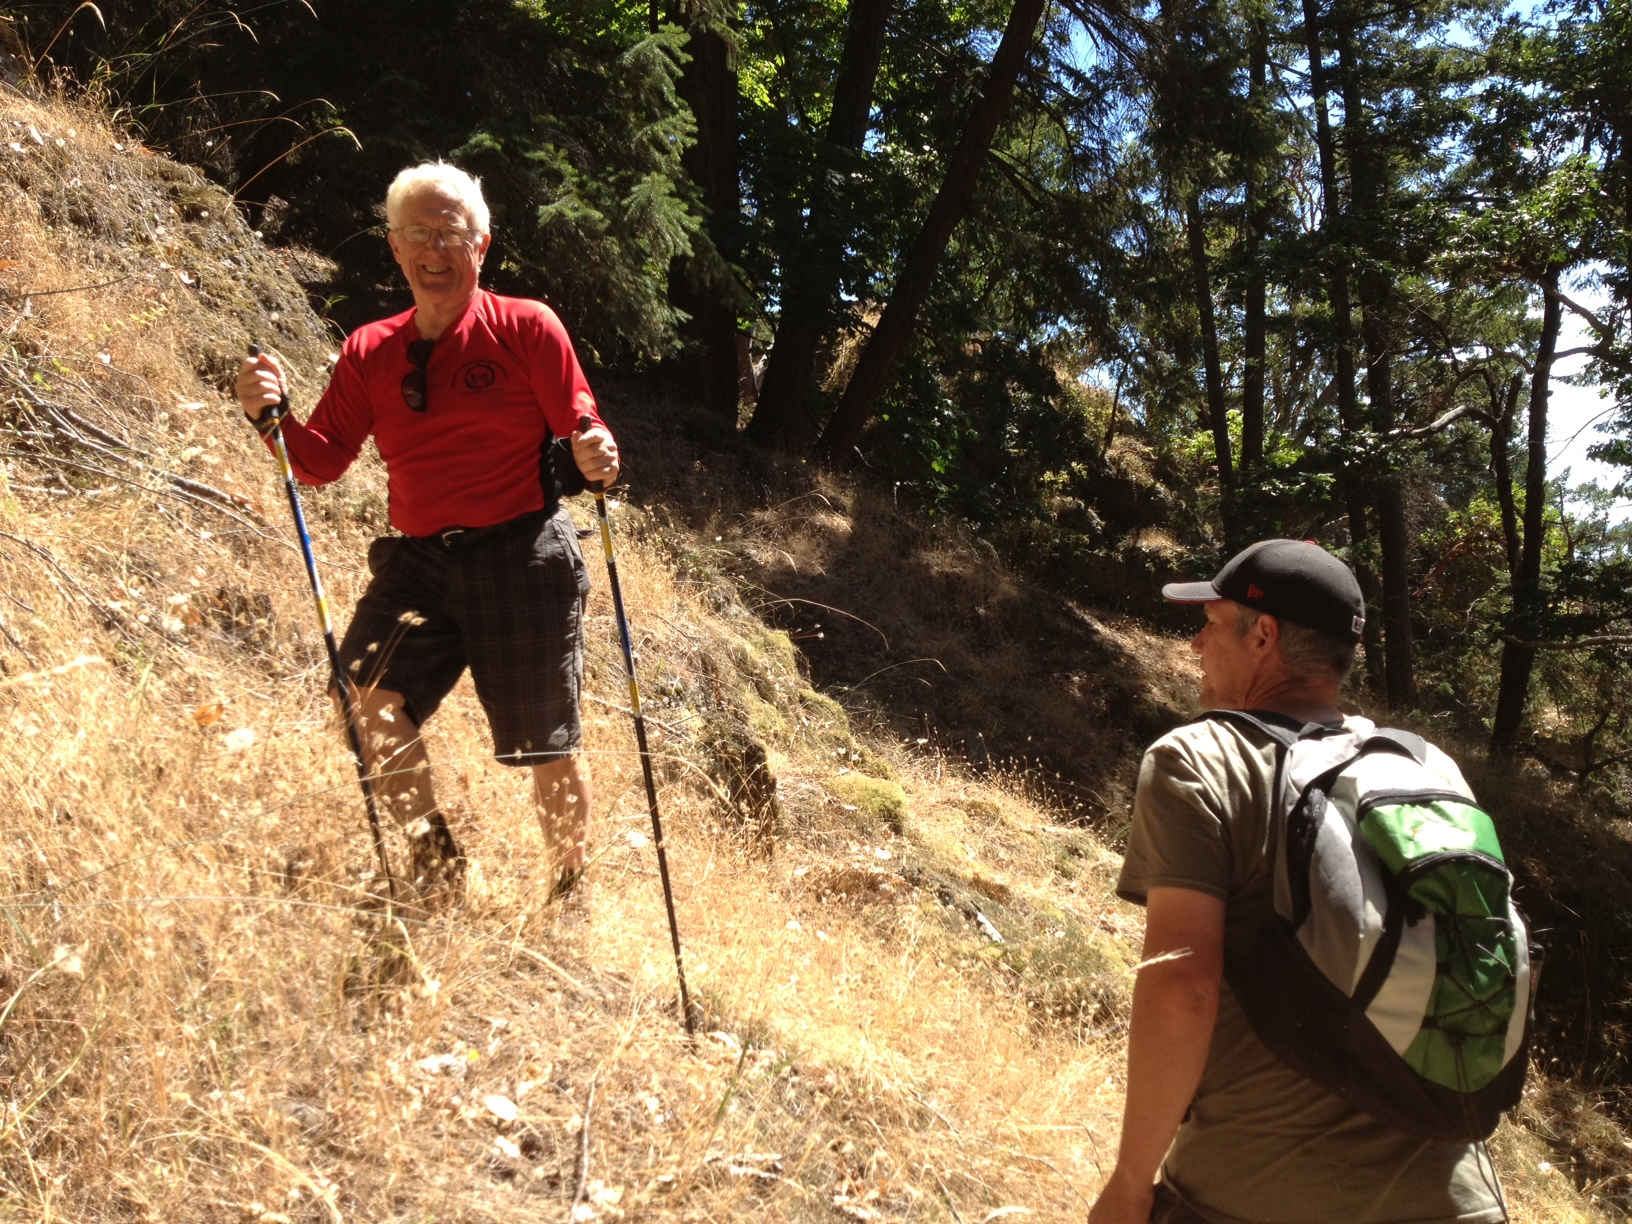 Hiking with his youngest son